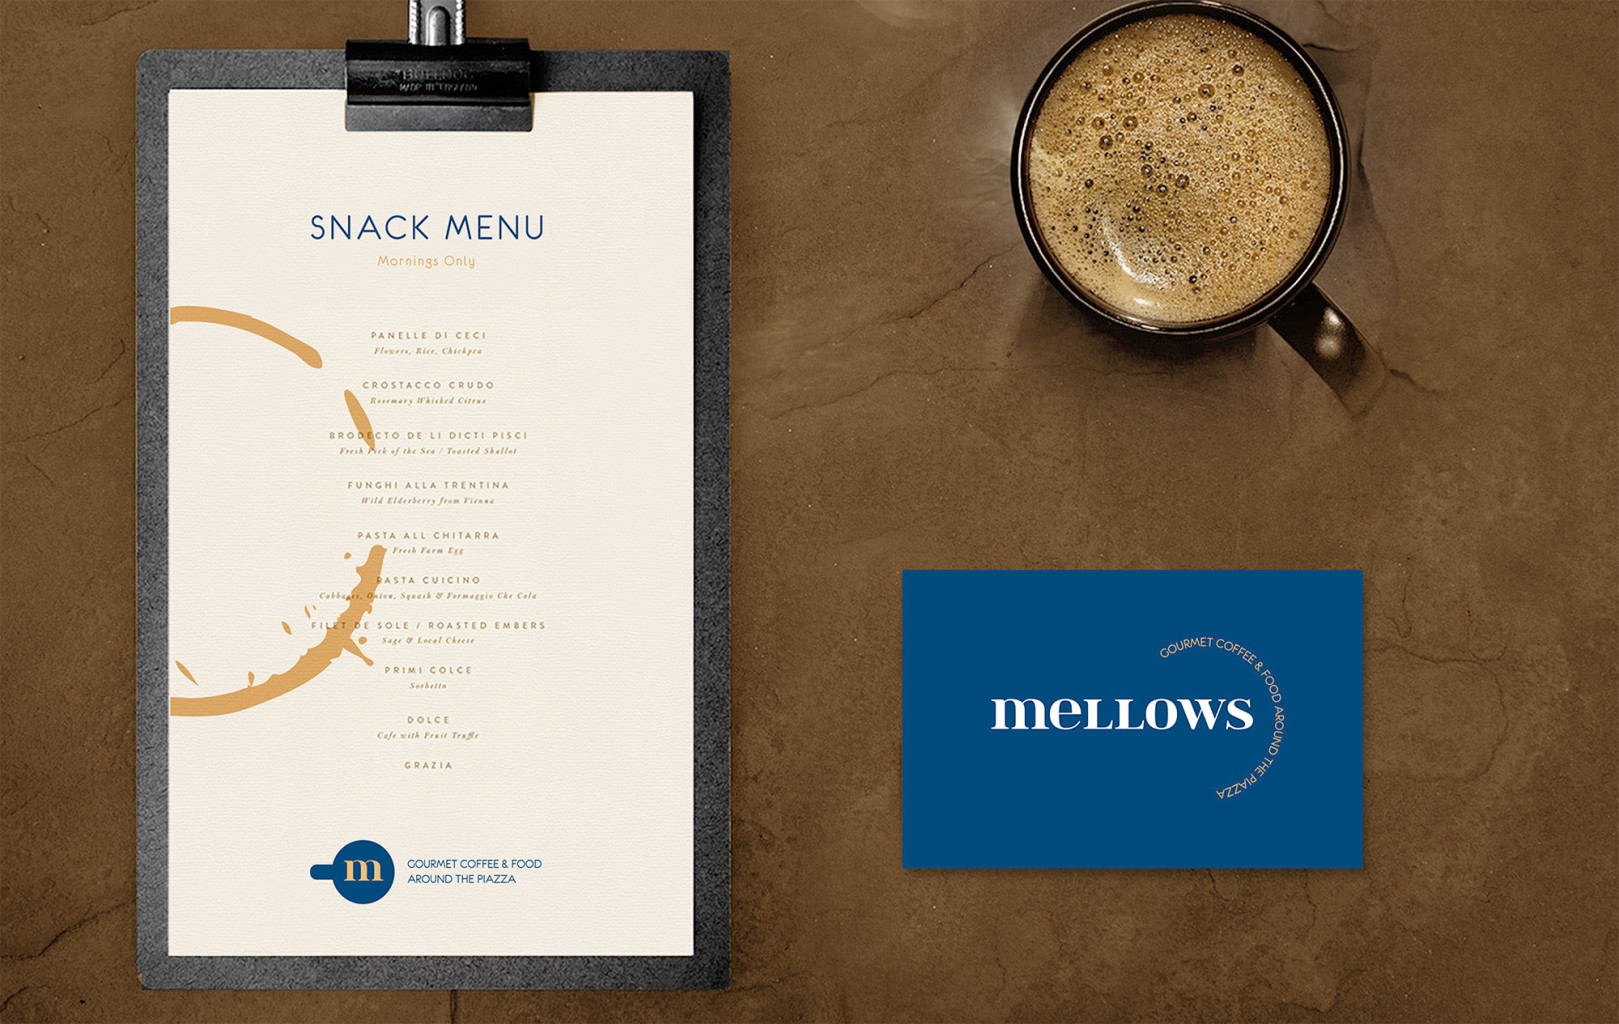 Mellows Rebranding Presentation